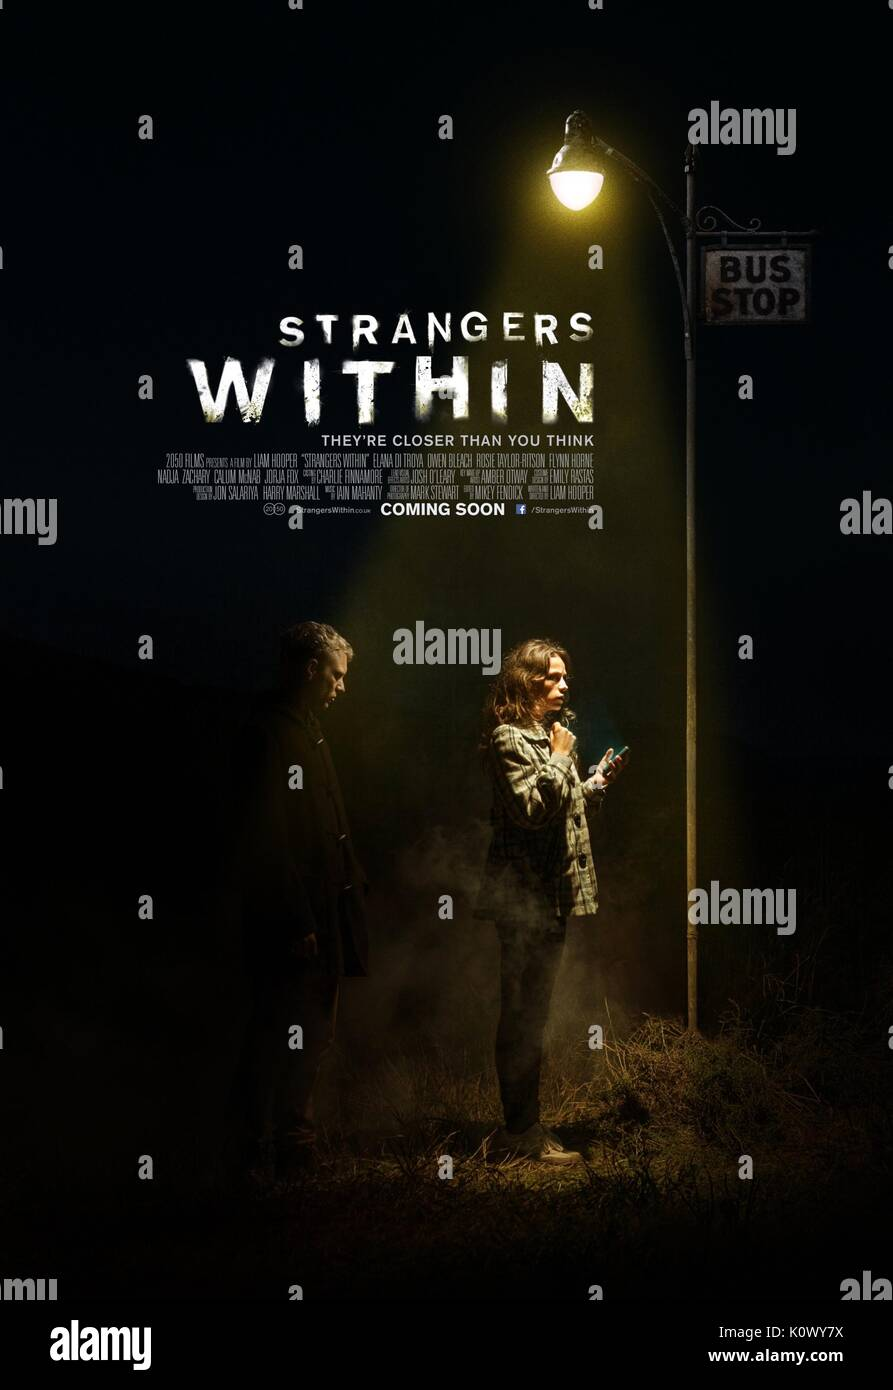 MOVIE POSTER STRANGERS WITHIN (2015) - Stock Image